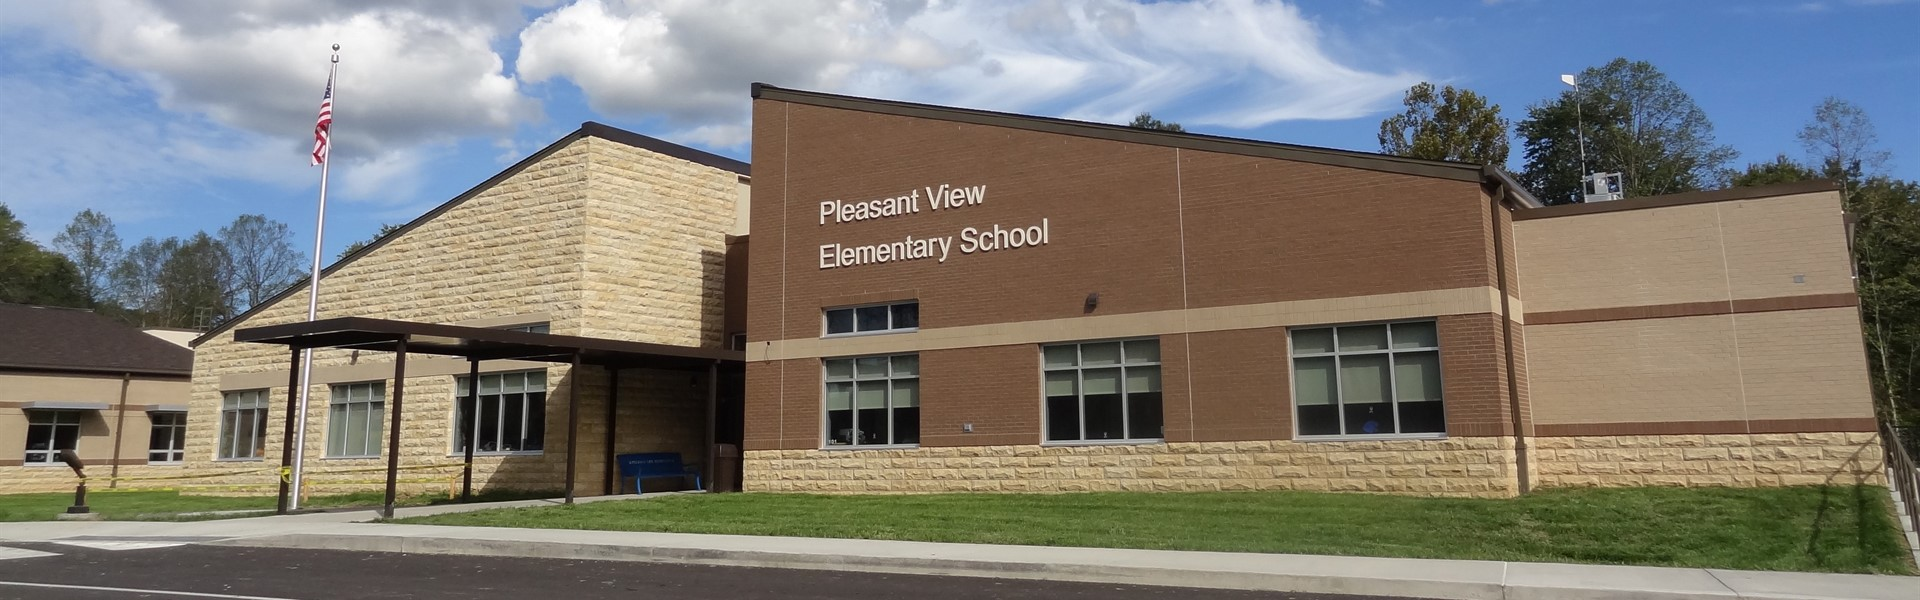 Welcome to Pleasant View Elementary